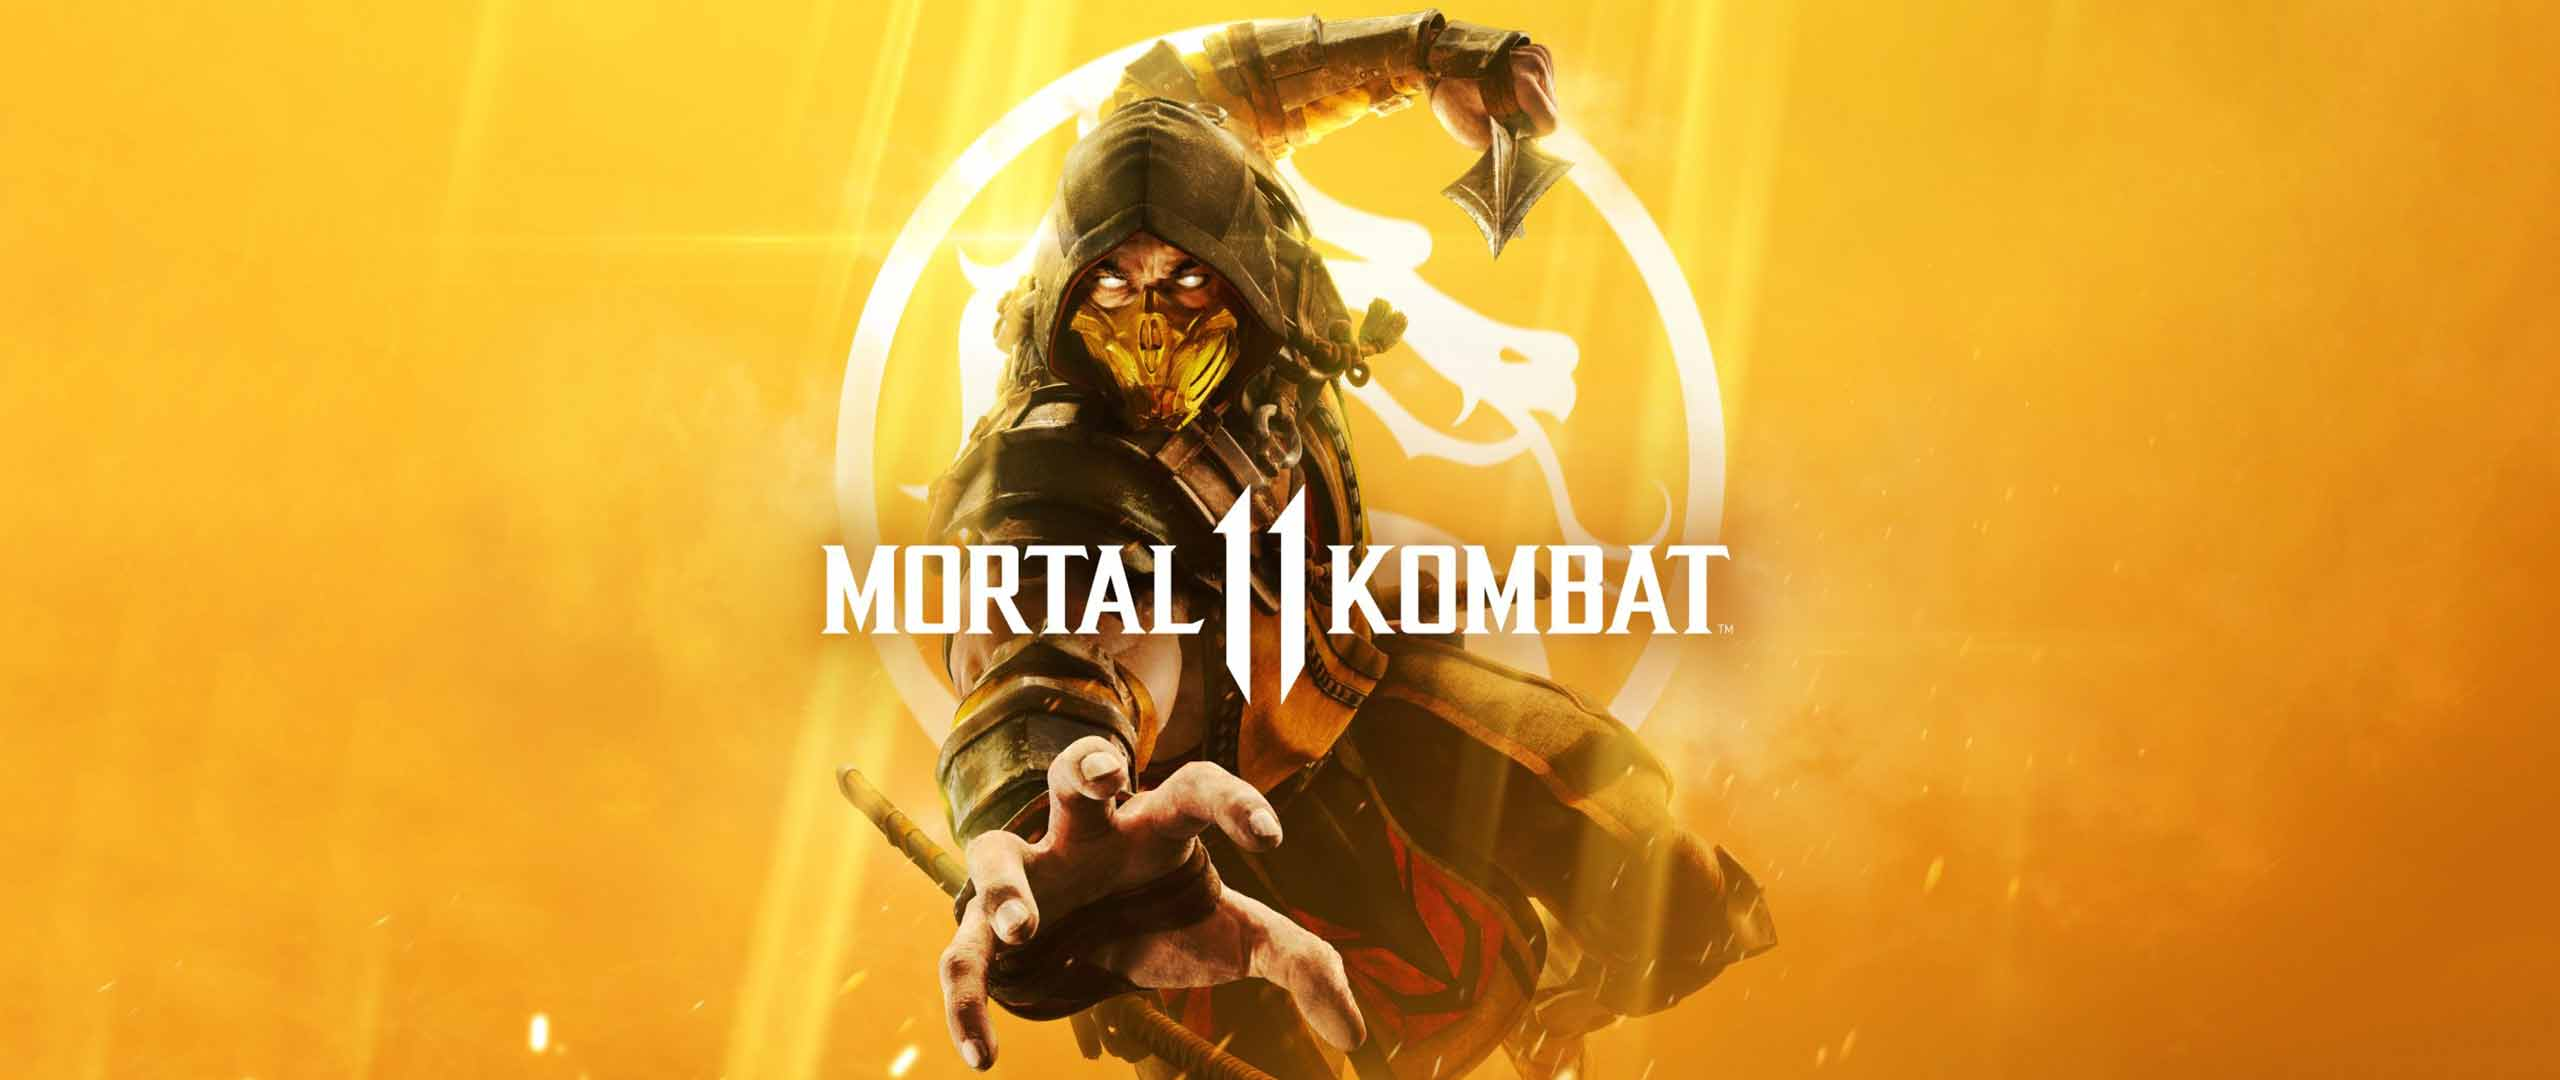 Mortal Kombat 11 , MK 11 , Mortal Kombat , Nether Realm , Mortal Kombat Beta , بتای بازی Mortal Kombat 11 , بتای بازی مورتال کمبت 11